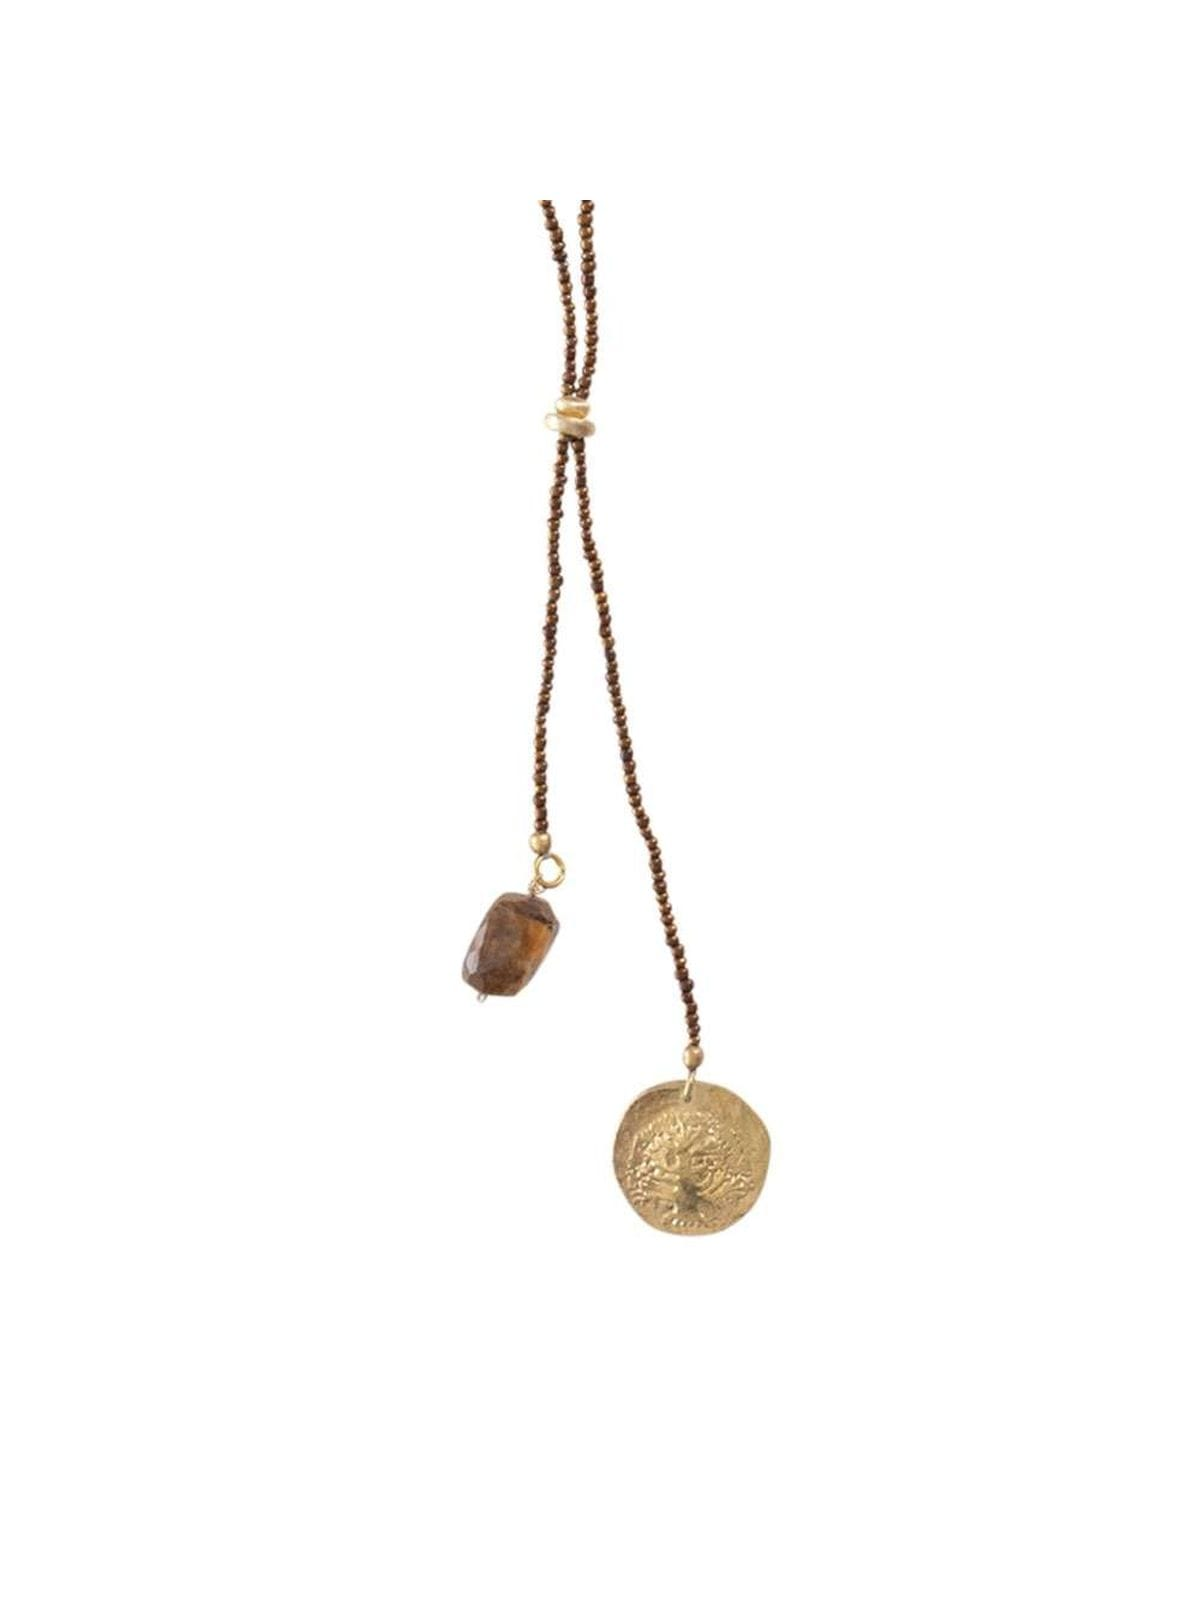 bl23358-fairy-tiger-eye-tree-coin-gold-necklace_600x600@2x_1200x1600